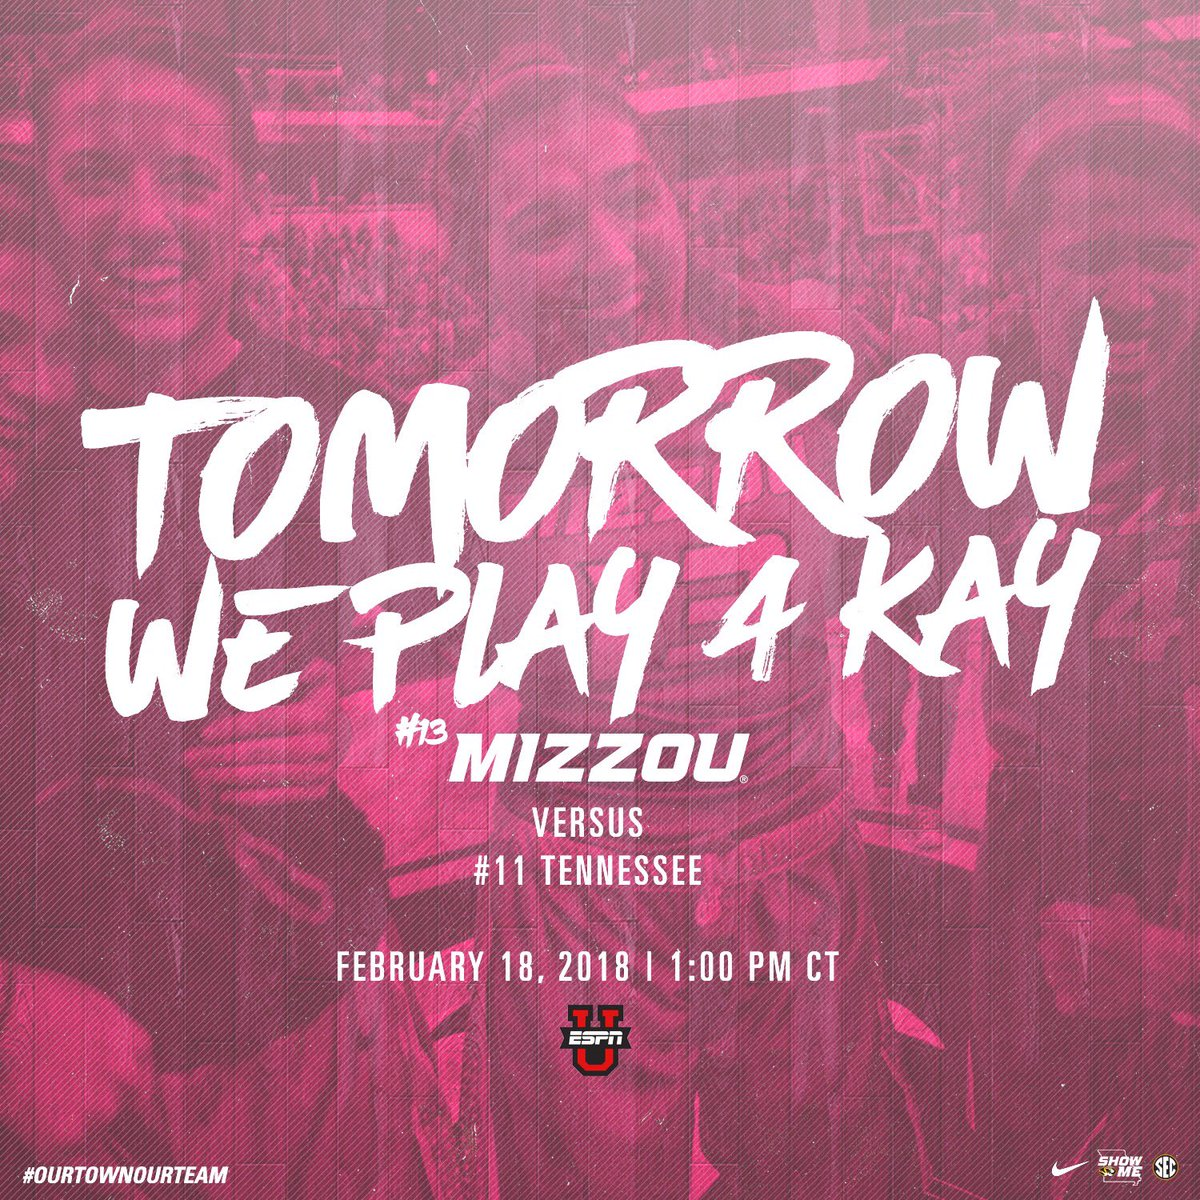 Mizzou athletics mizzouathletics twitter our game tomorrow vs 11 tennessee we hope you know how much we appreciate this community and our fanbase lets make mizzou arena electric and break publicscrutiny Choice Image